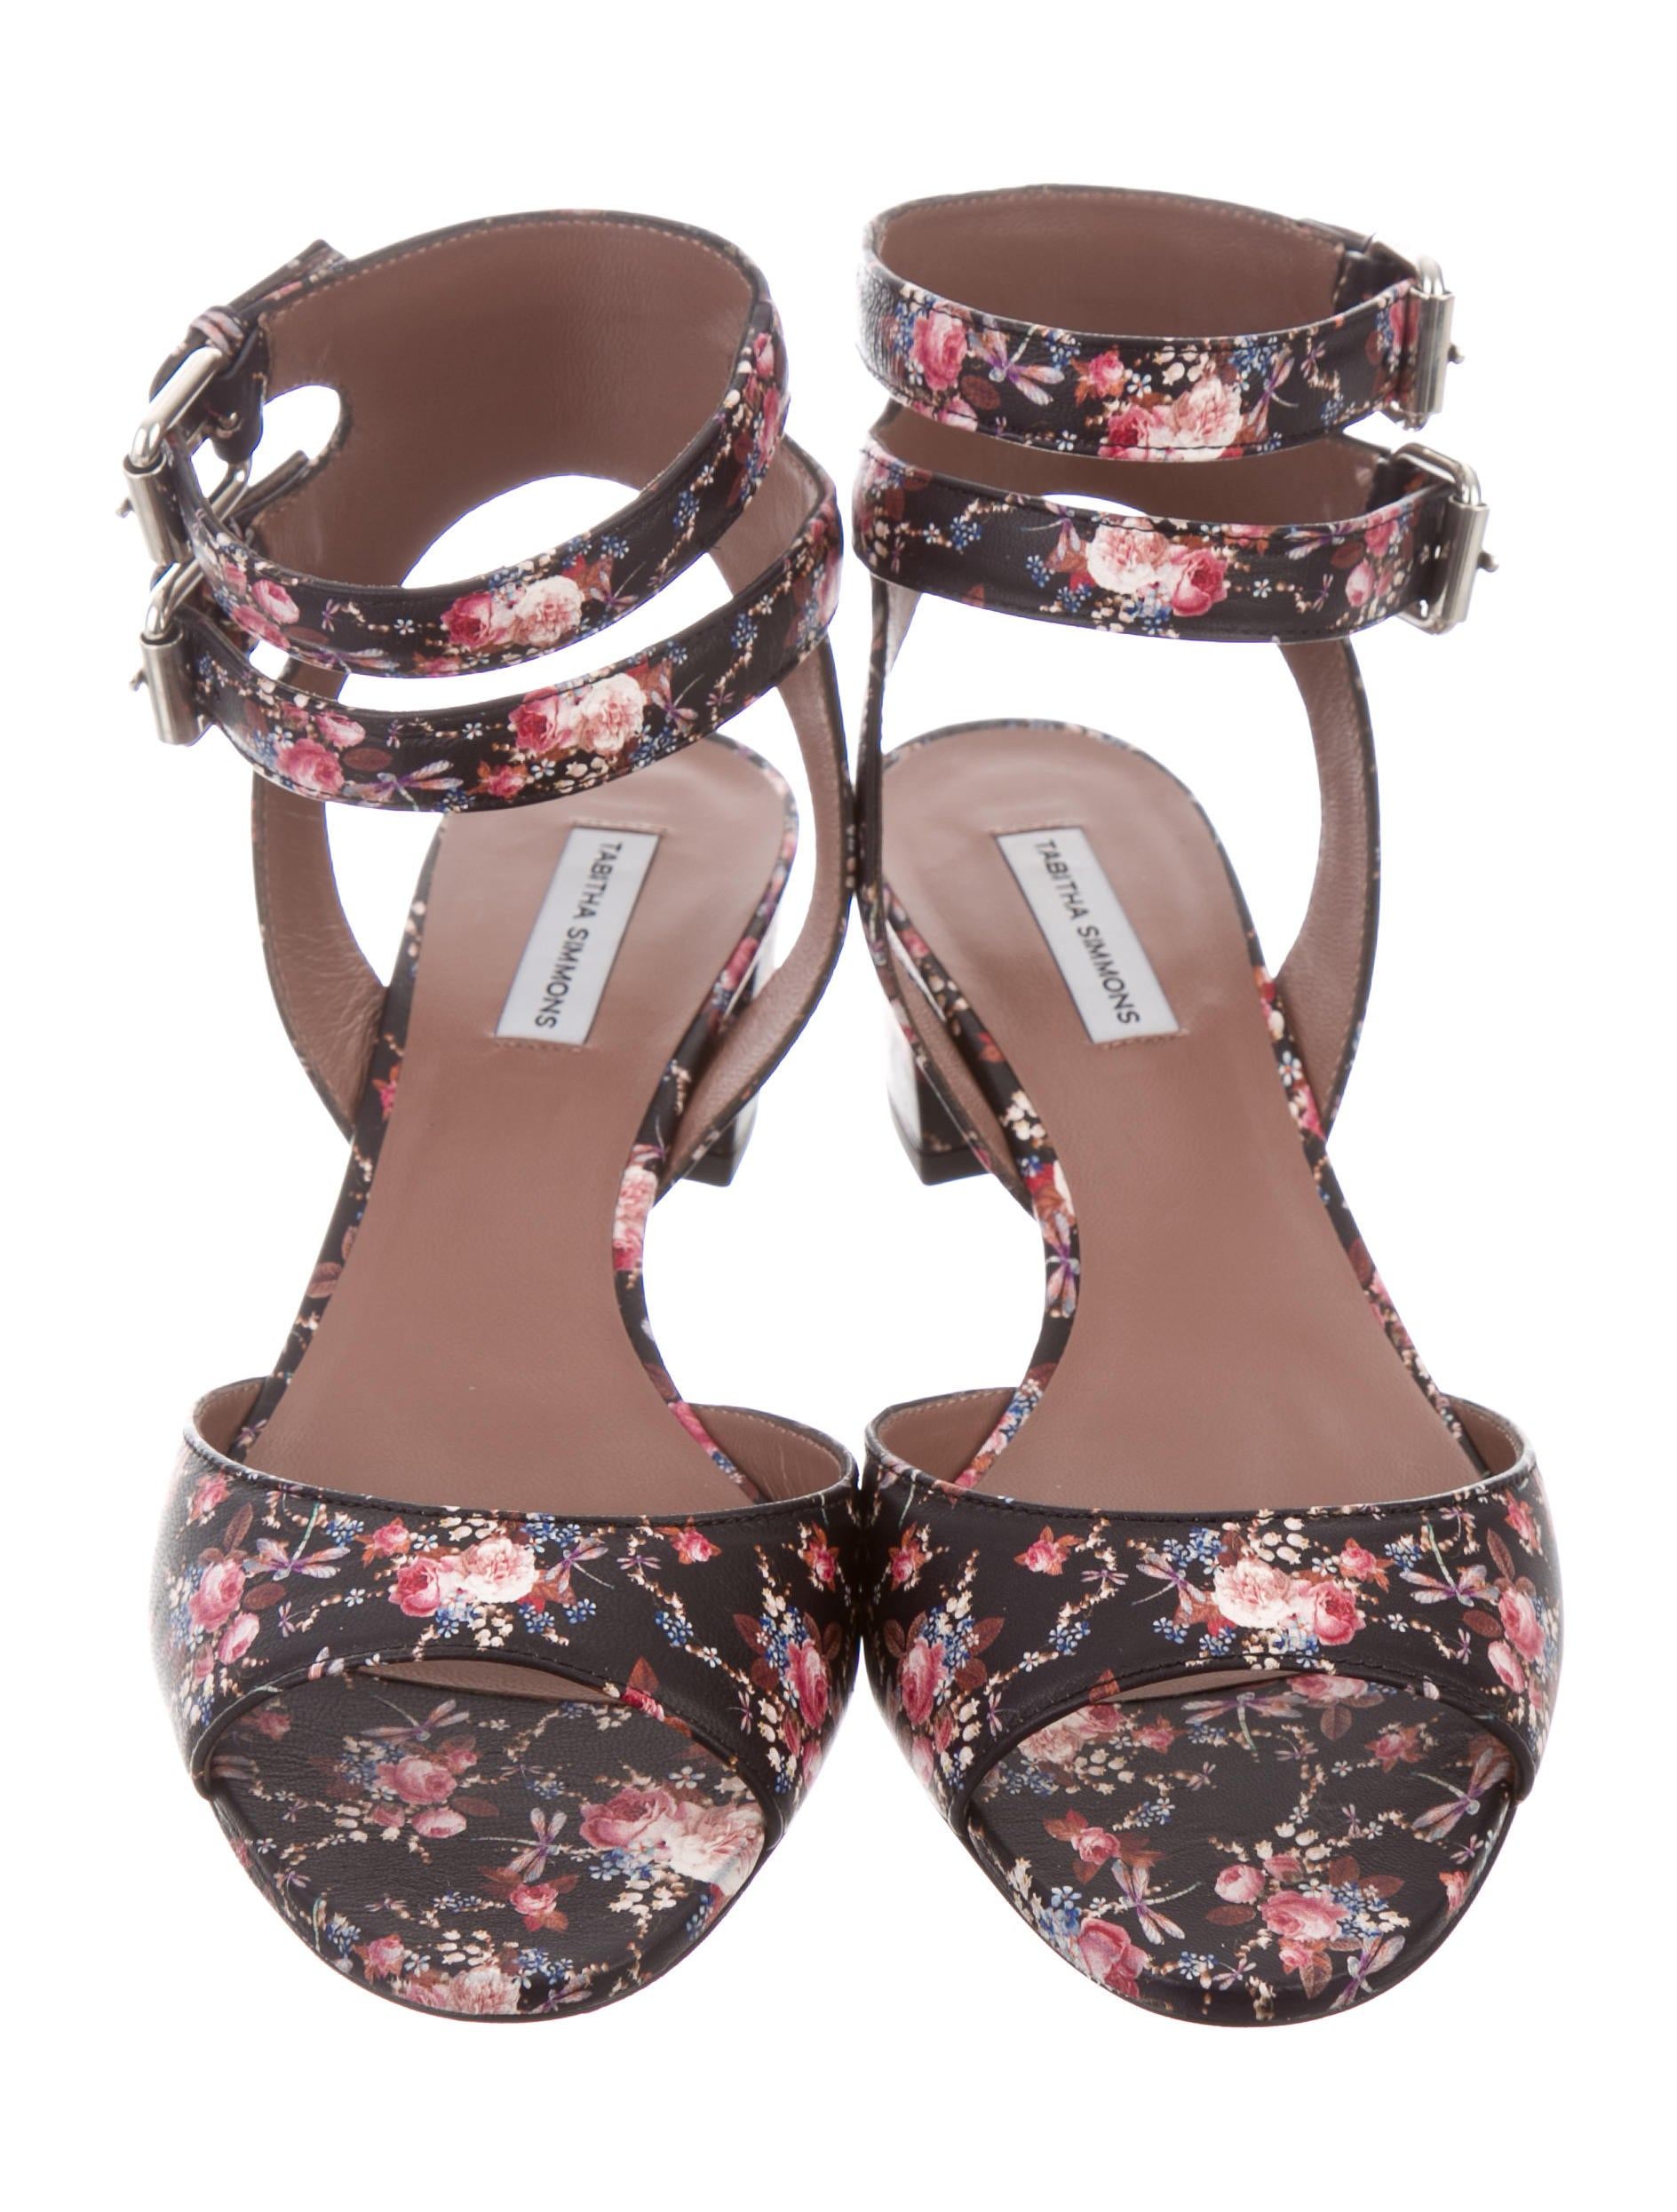 Tabitha Simmons Aimee Leather Sandals w/ Tags store for sale QOEOJNd